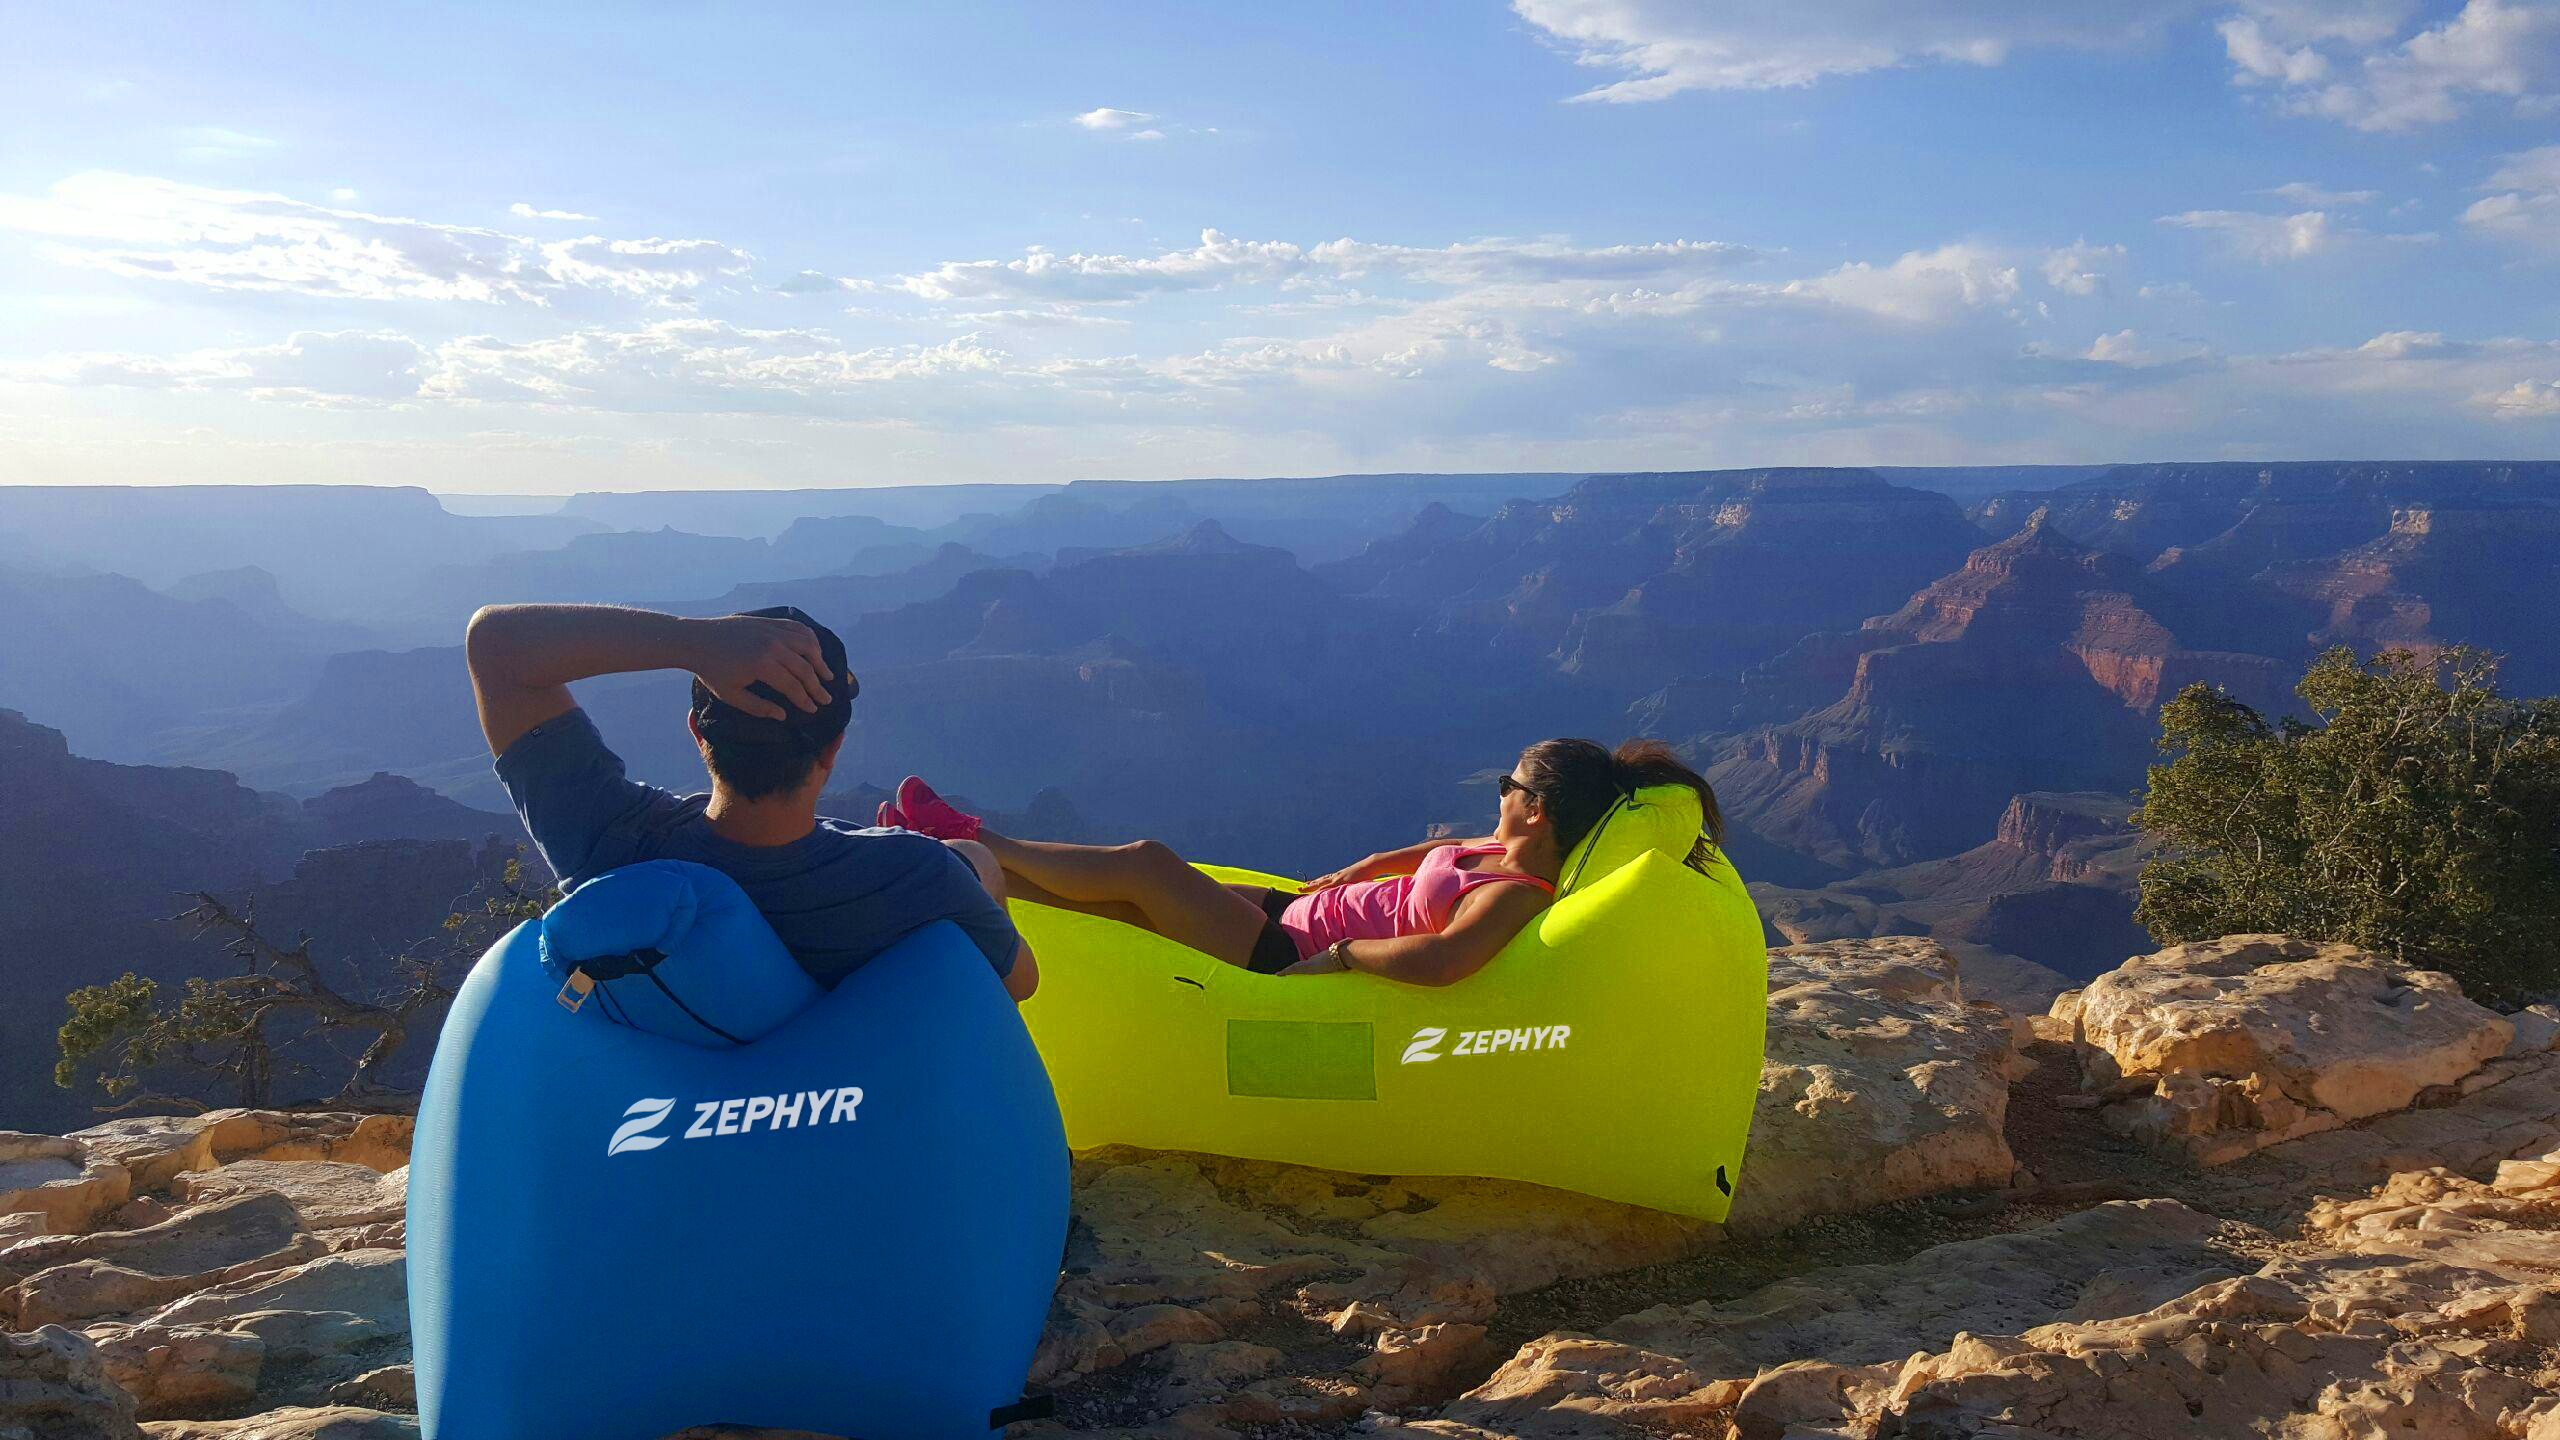 Win The Ultimate Festival Accessory, The Zephyr Inflatable Hammock